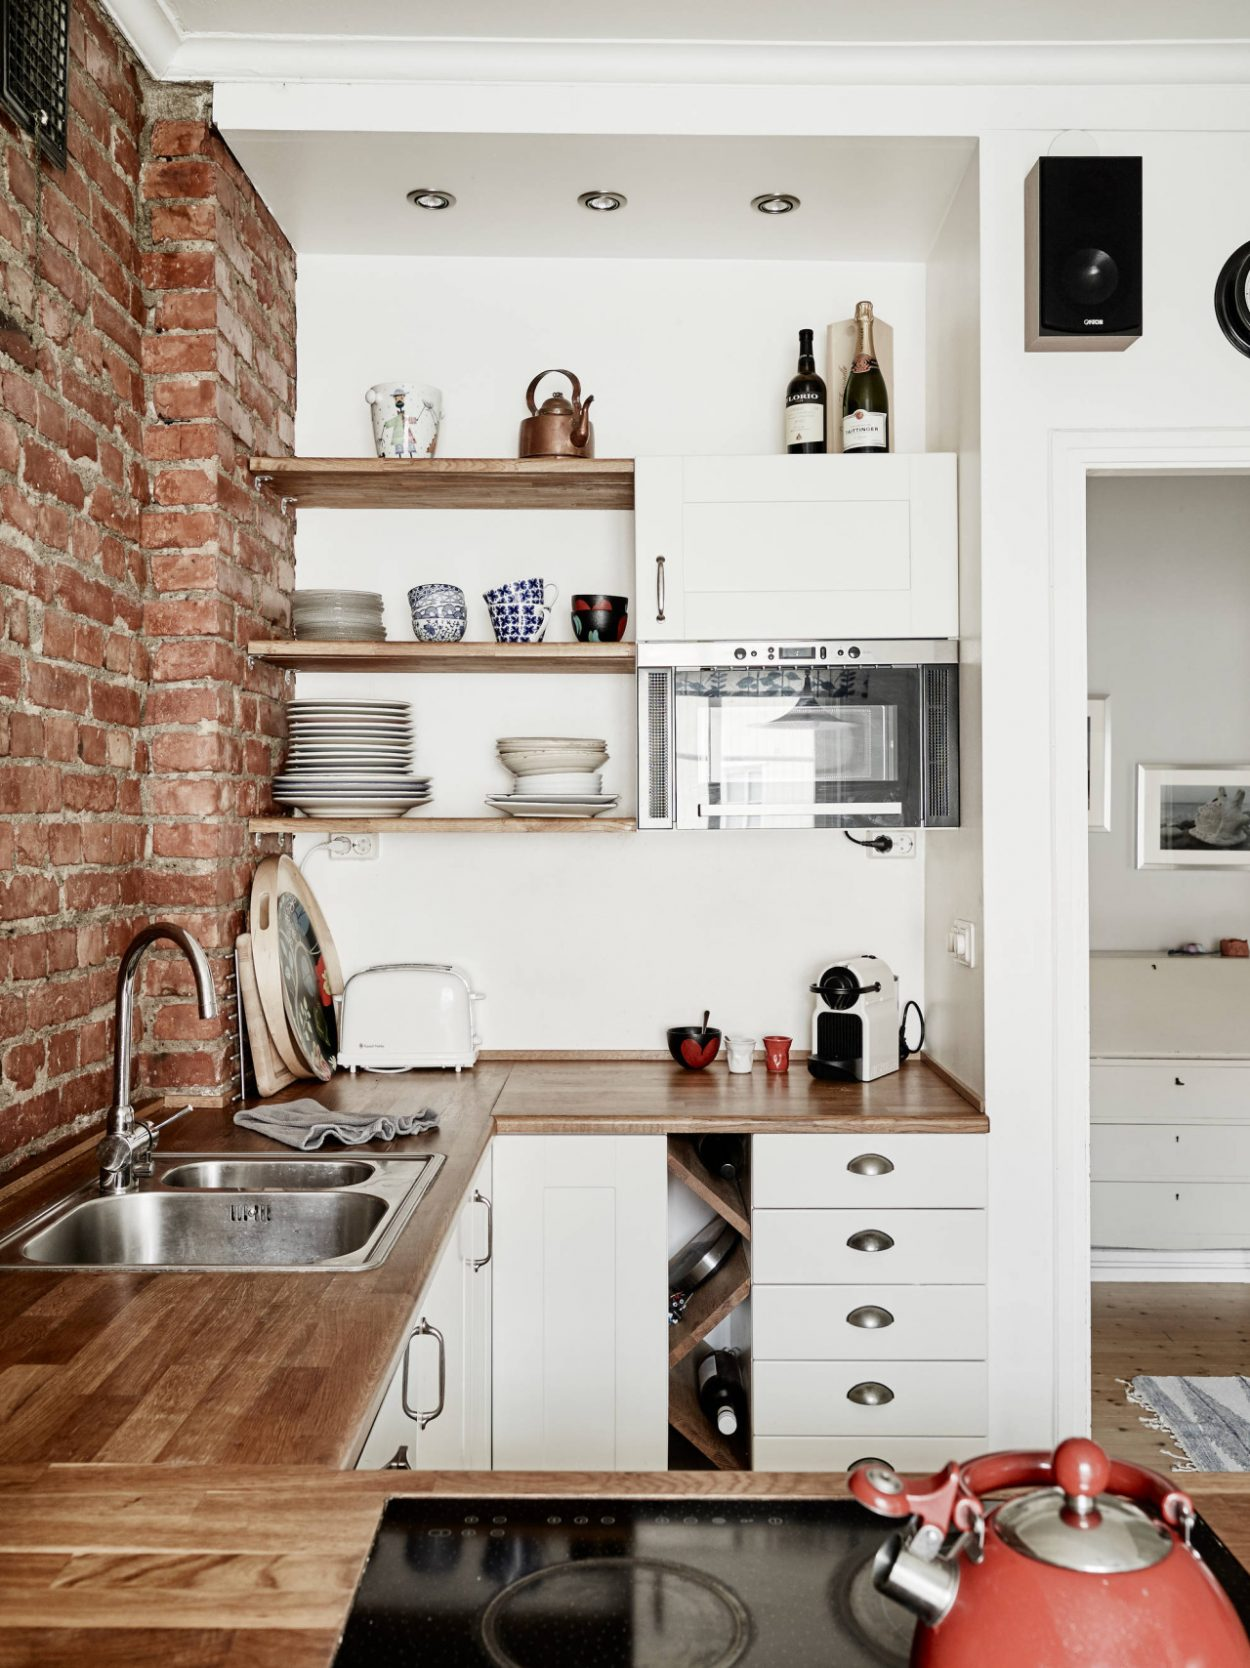 10 ways to make your small kitchen look bigger | HouseAndHome.ie